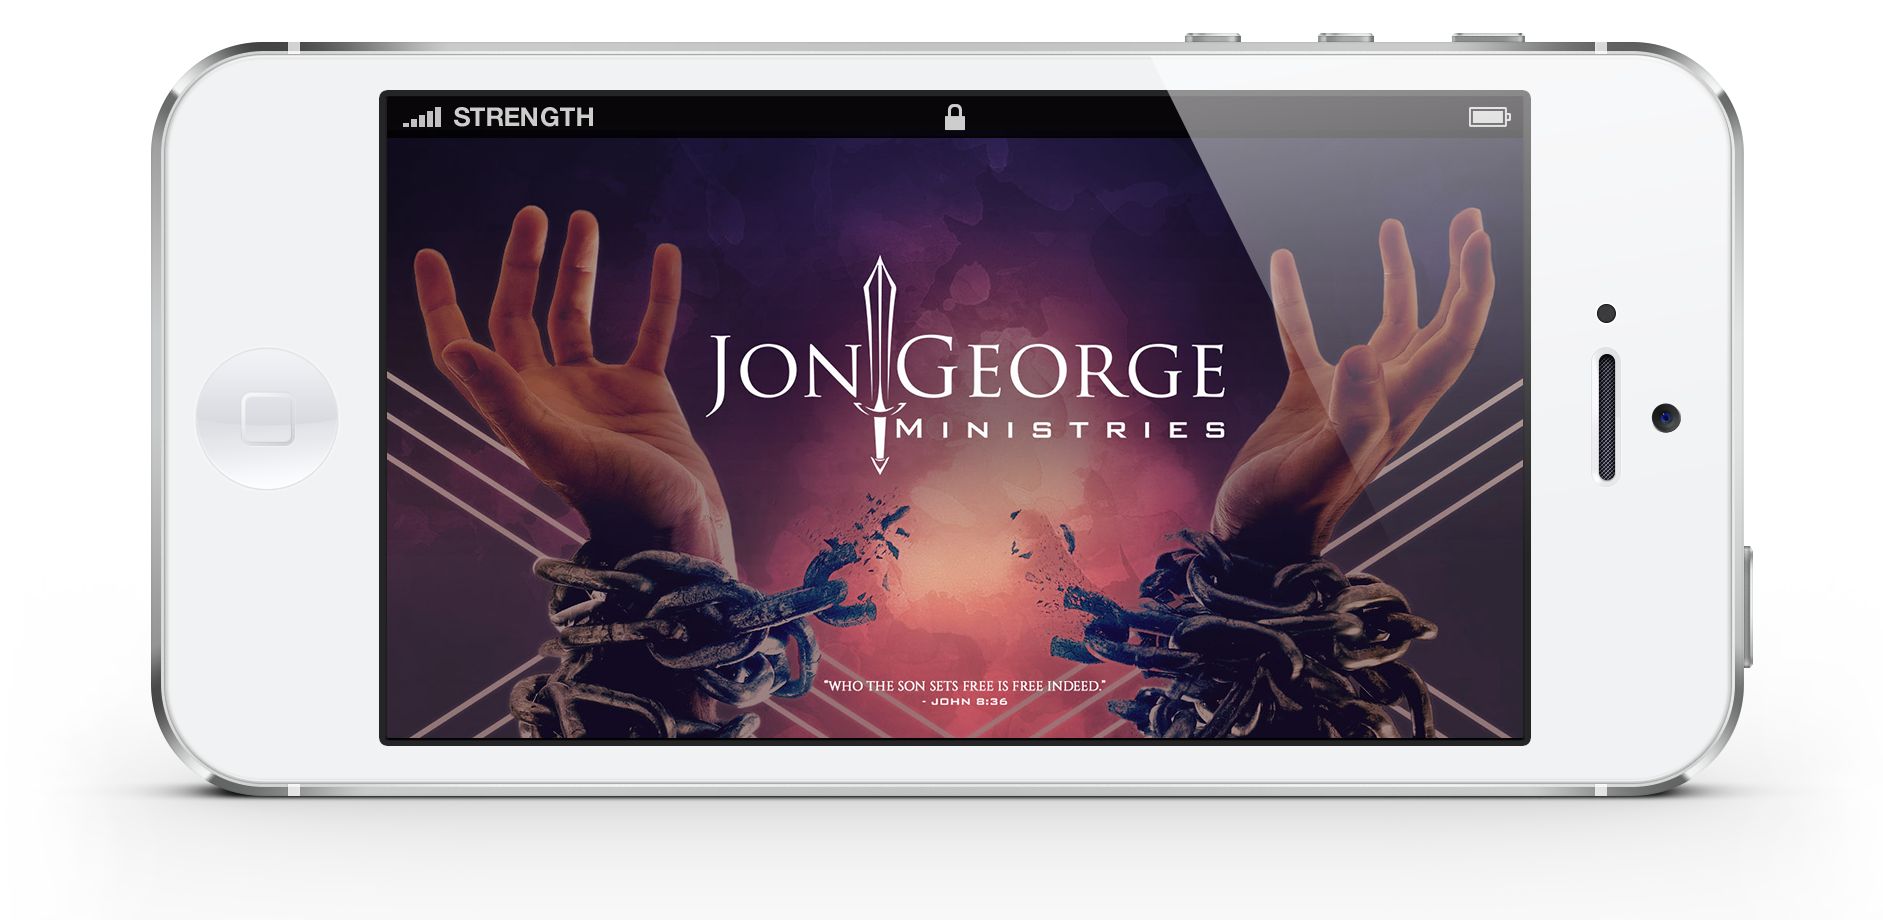 Jon George Ministries Mobile App